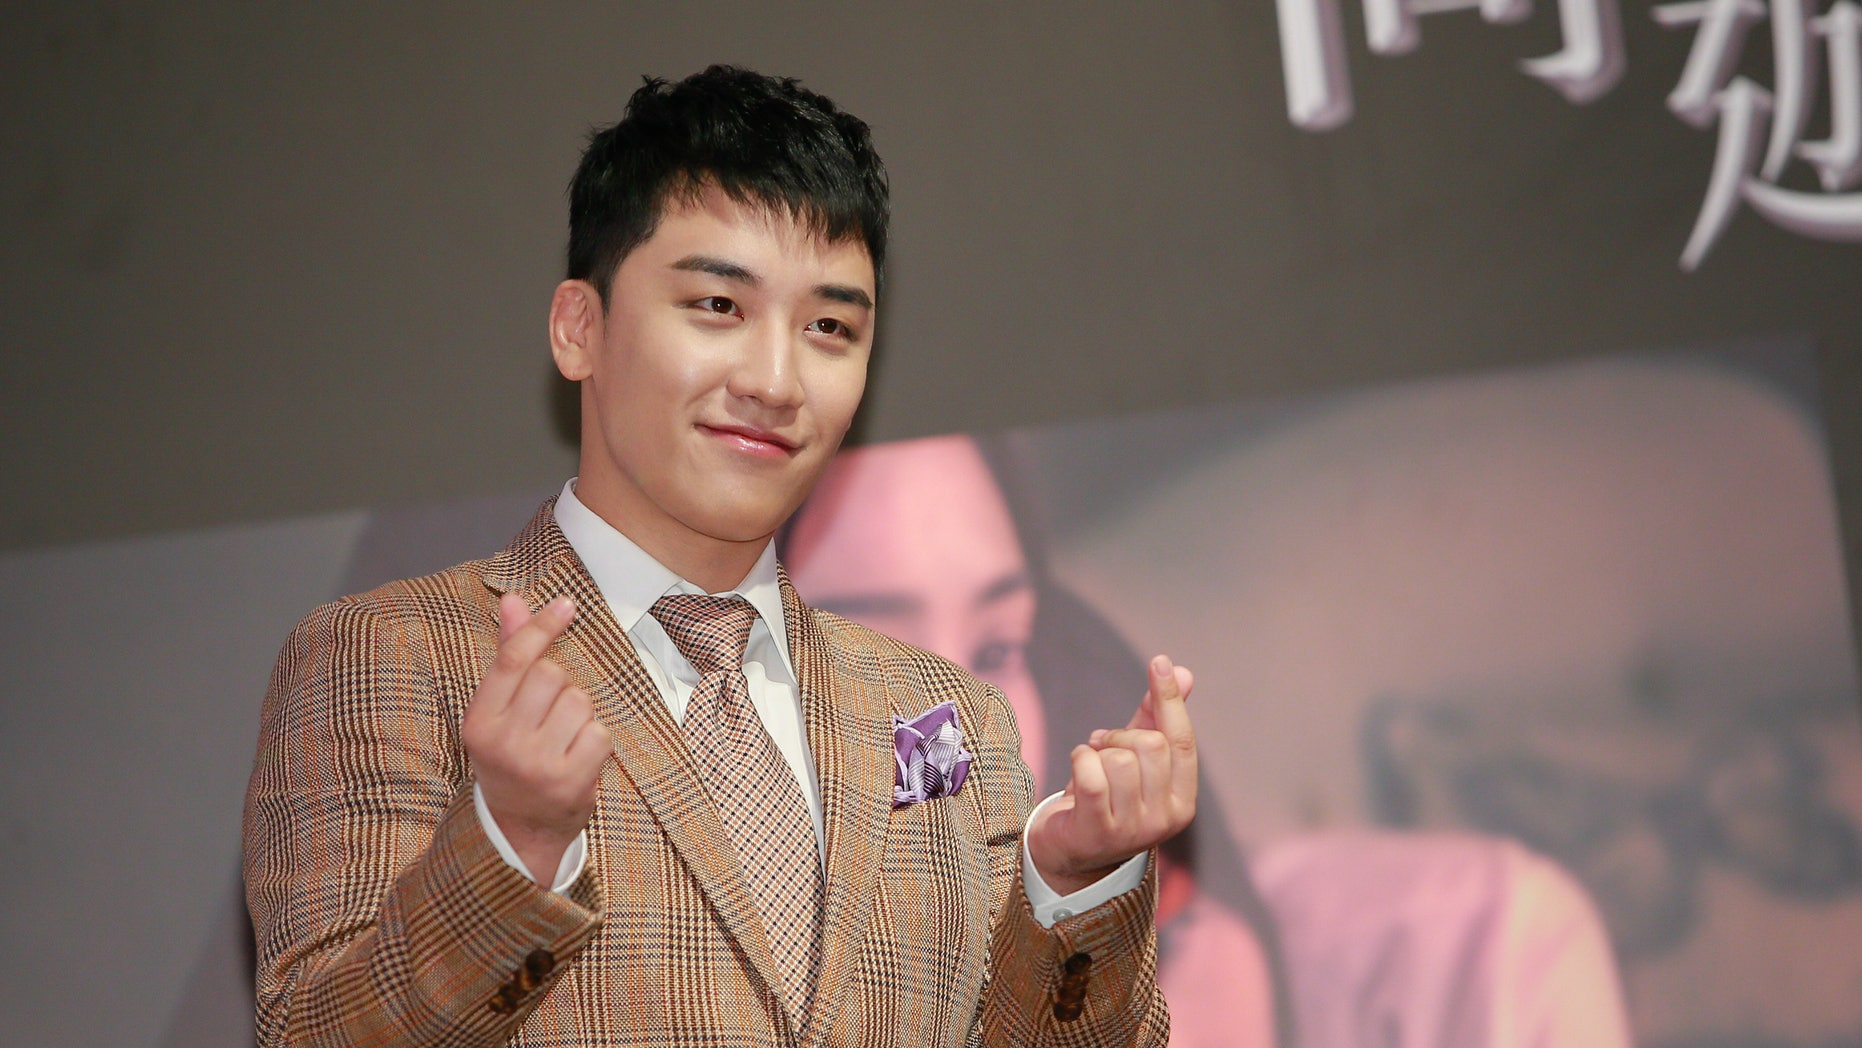 Seungri takes to Instagram to announce his retirement from the entertainment industry